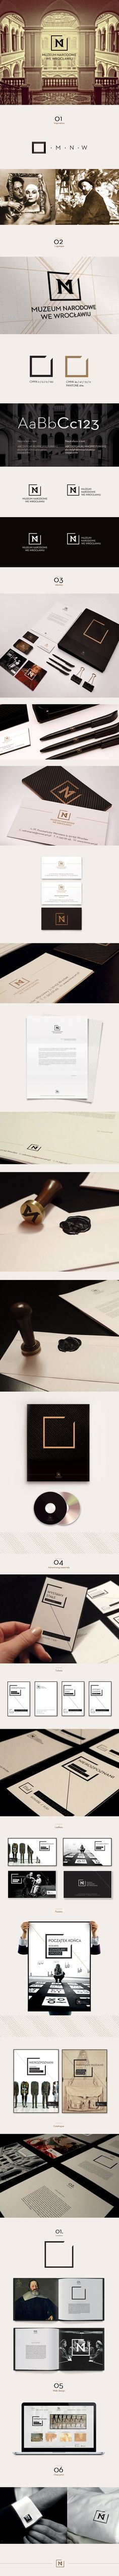 Identity System of Museum National in Wroclaw by Milena Włodarczyk, via Behance